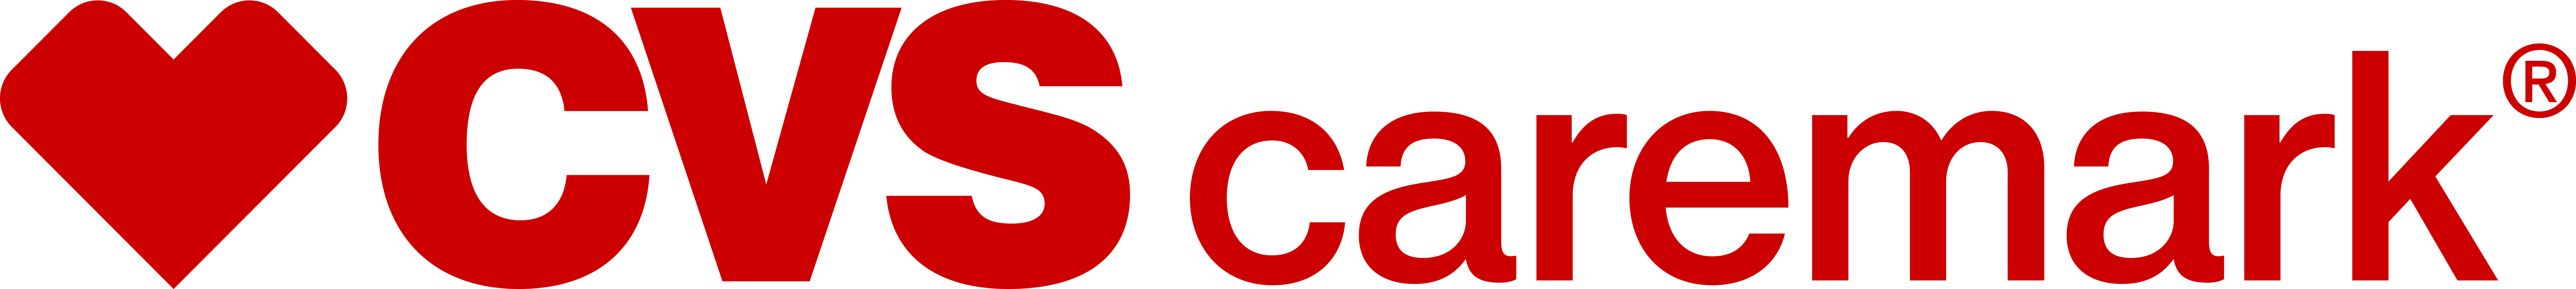 CVS Logo - CVS Caremark Logo | CVS Health